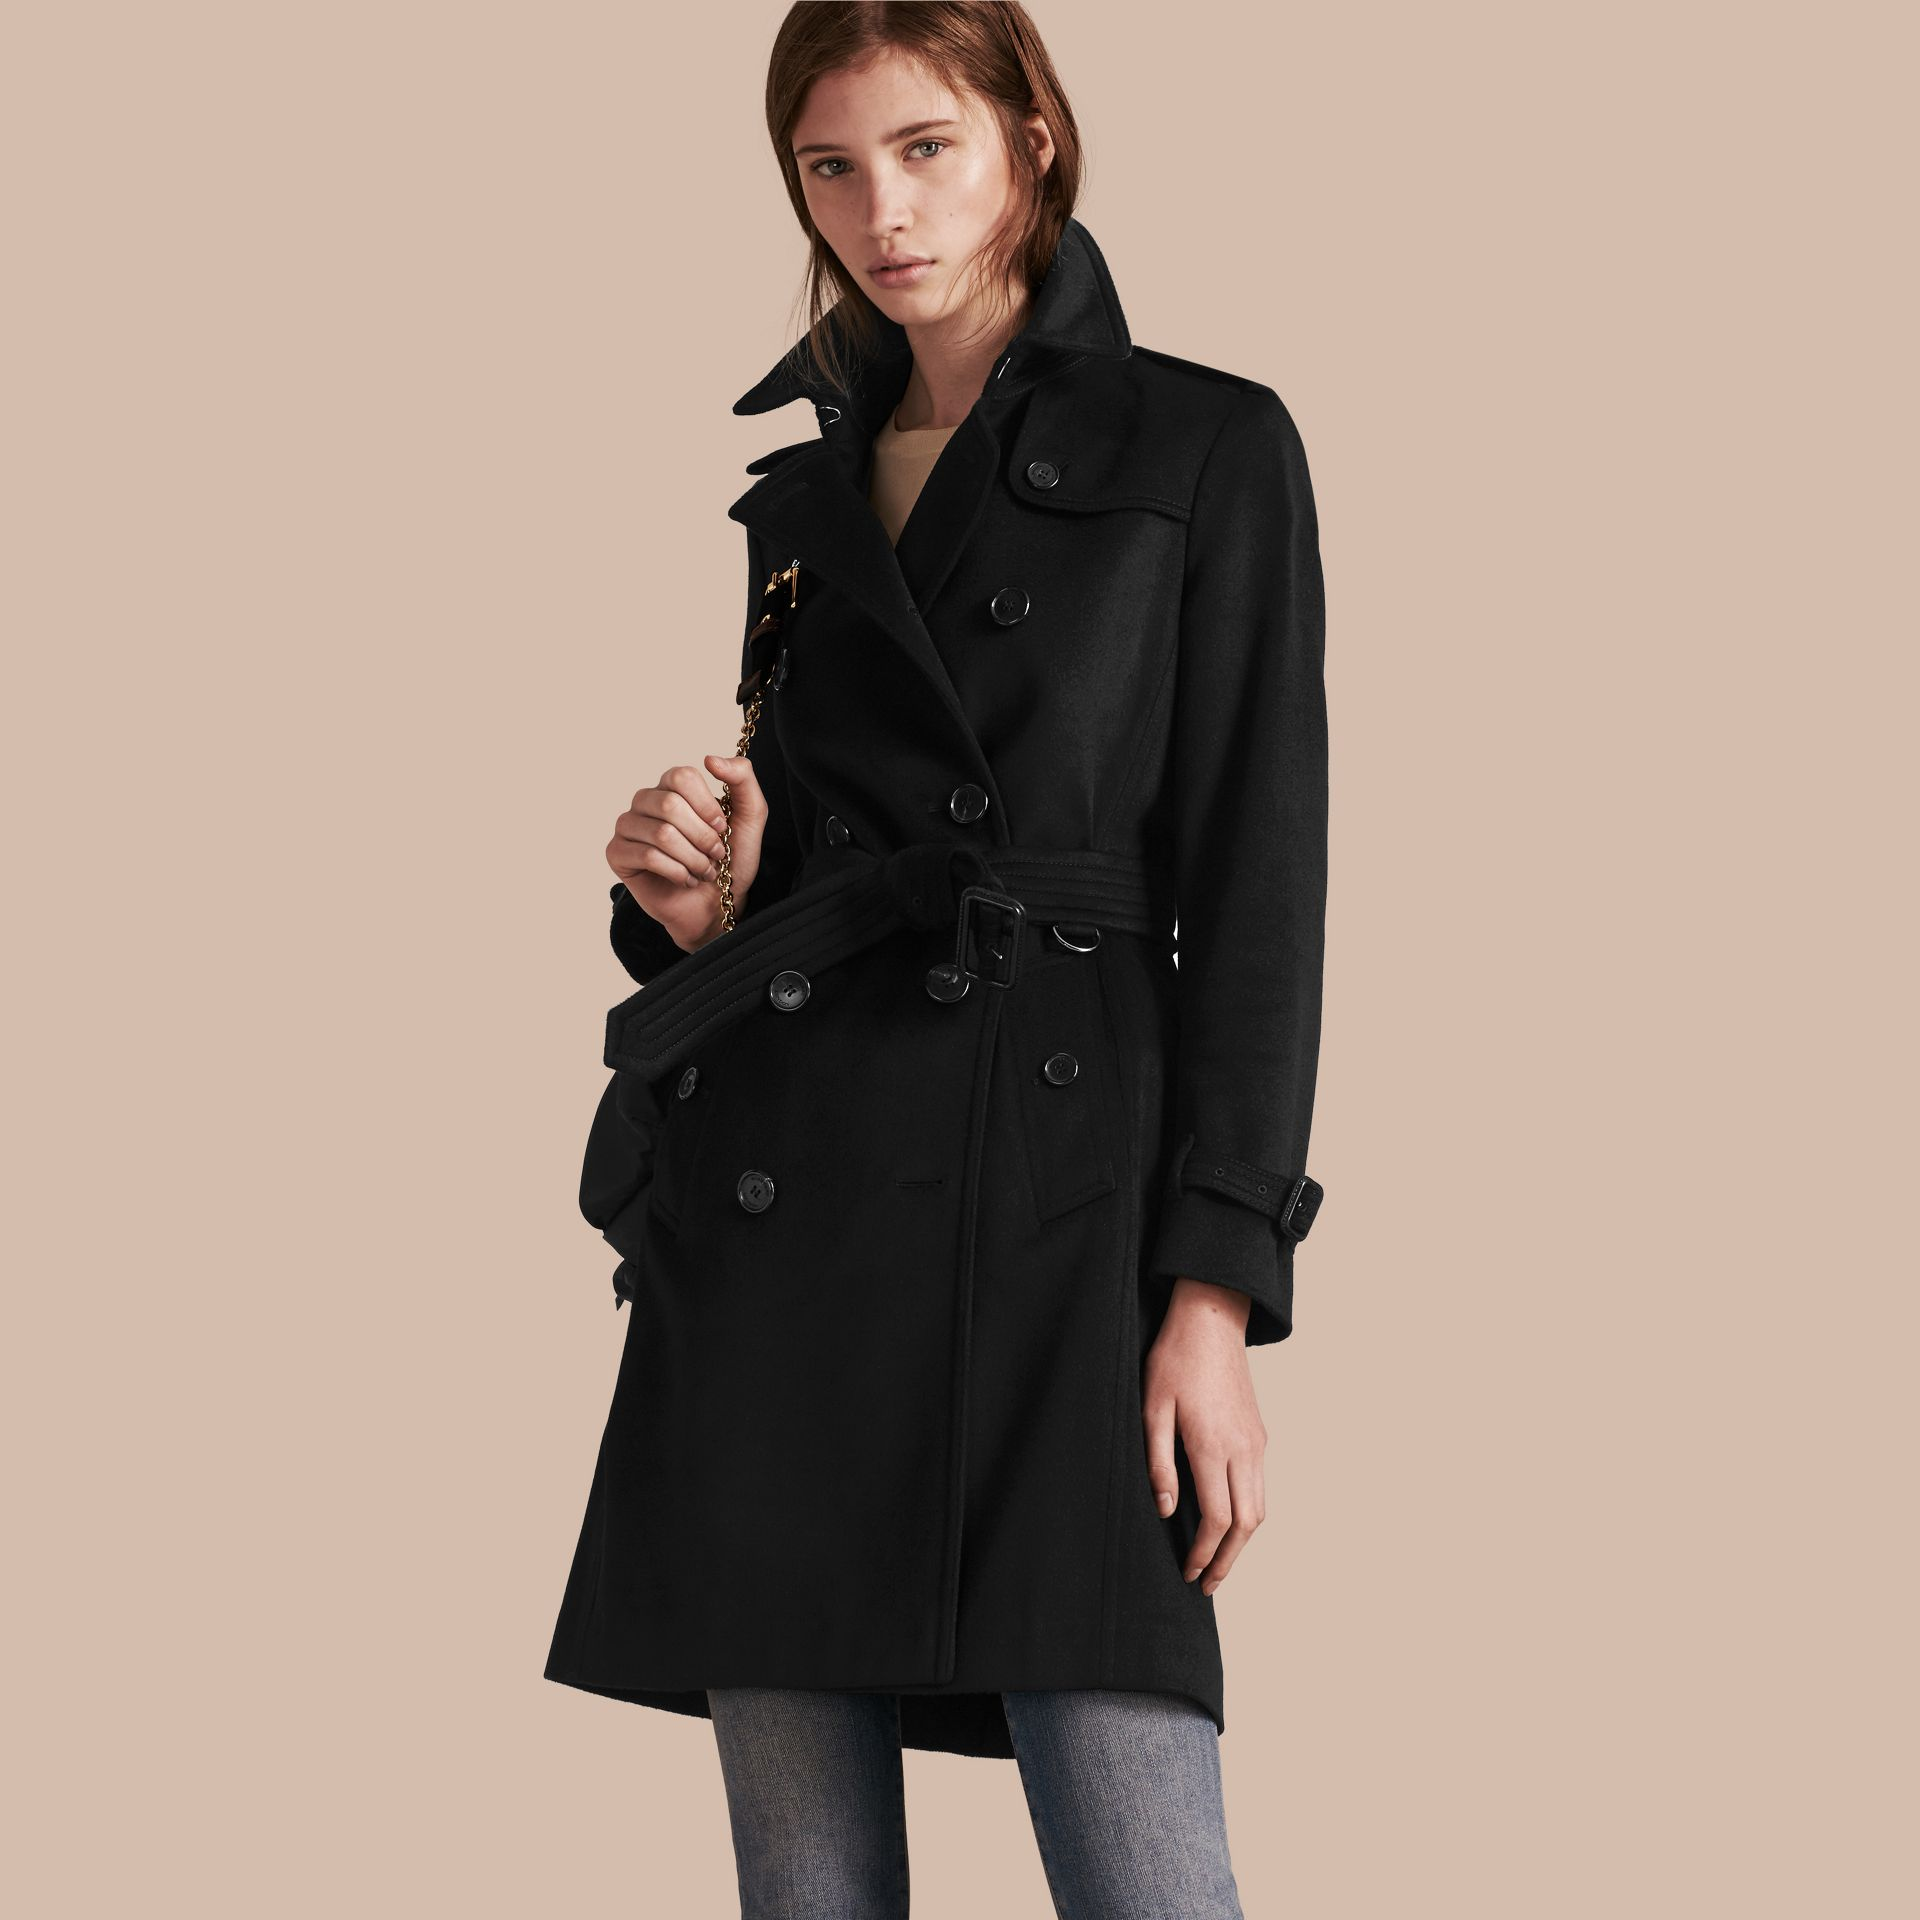 Black Kensington Fit Cashmere Trench Coat Black - gallery image 1